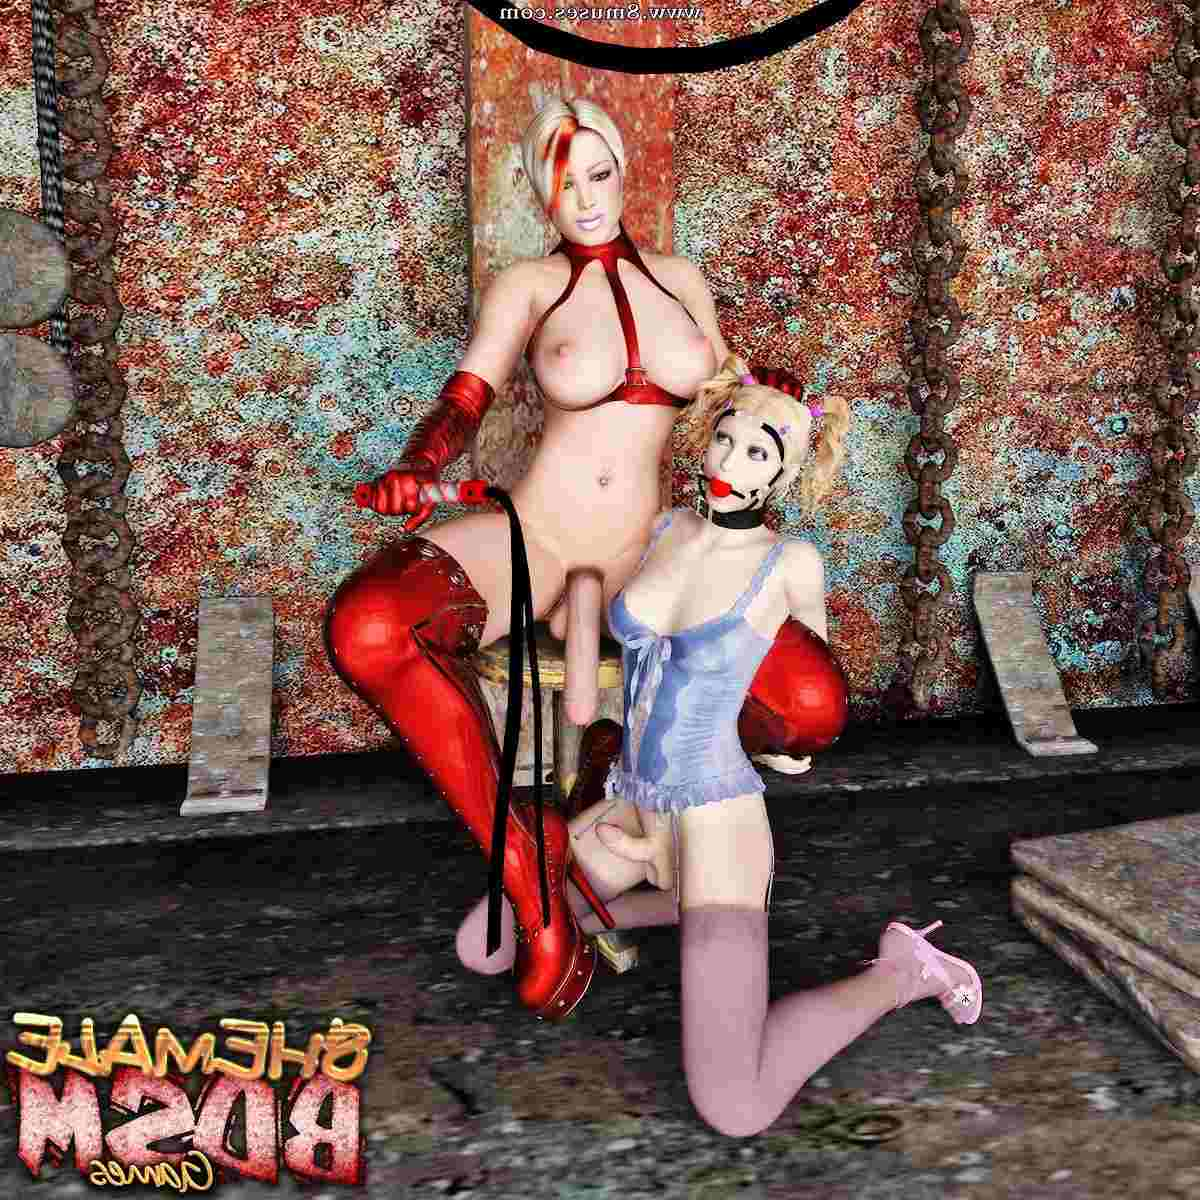 Adult-Empire-Comics/Shemale-BDSM-Games Shemale_BDSM_Games__8muses_-_Sex_and_Porn_Comics.jpg